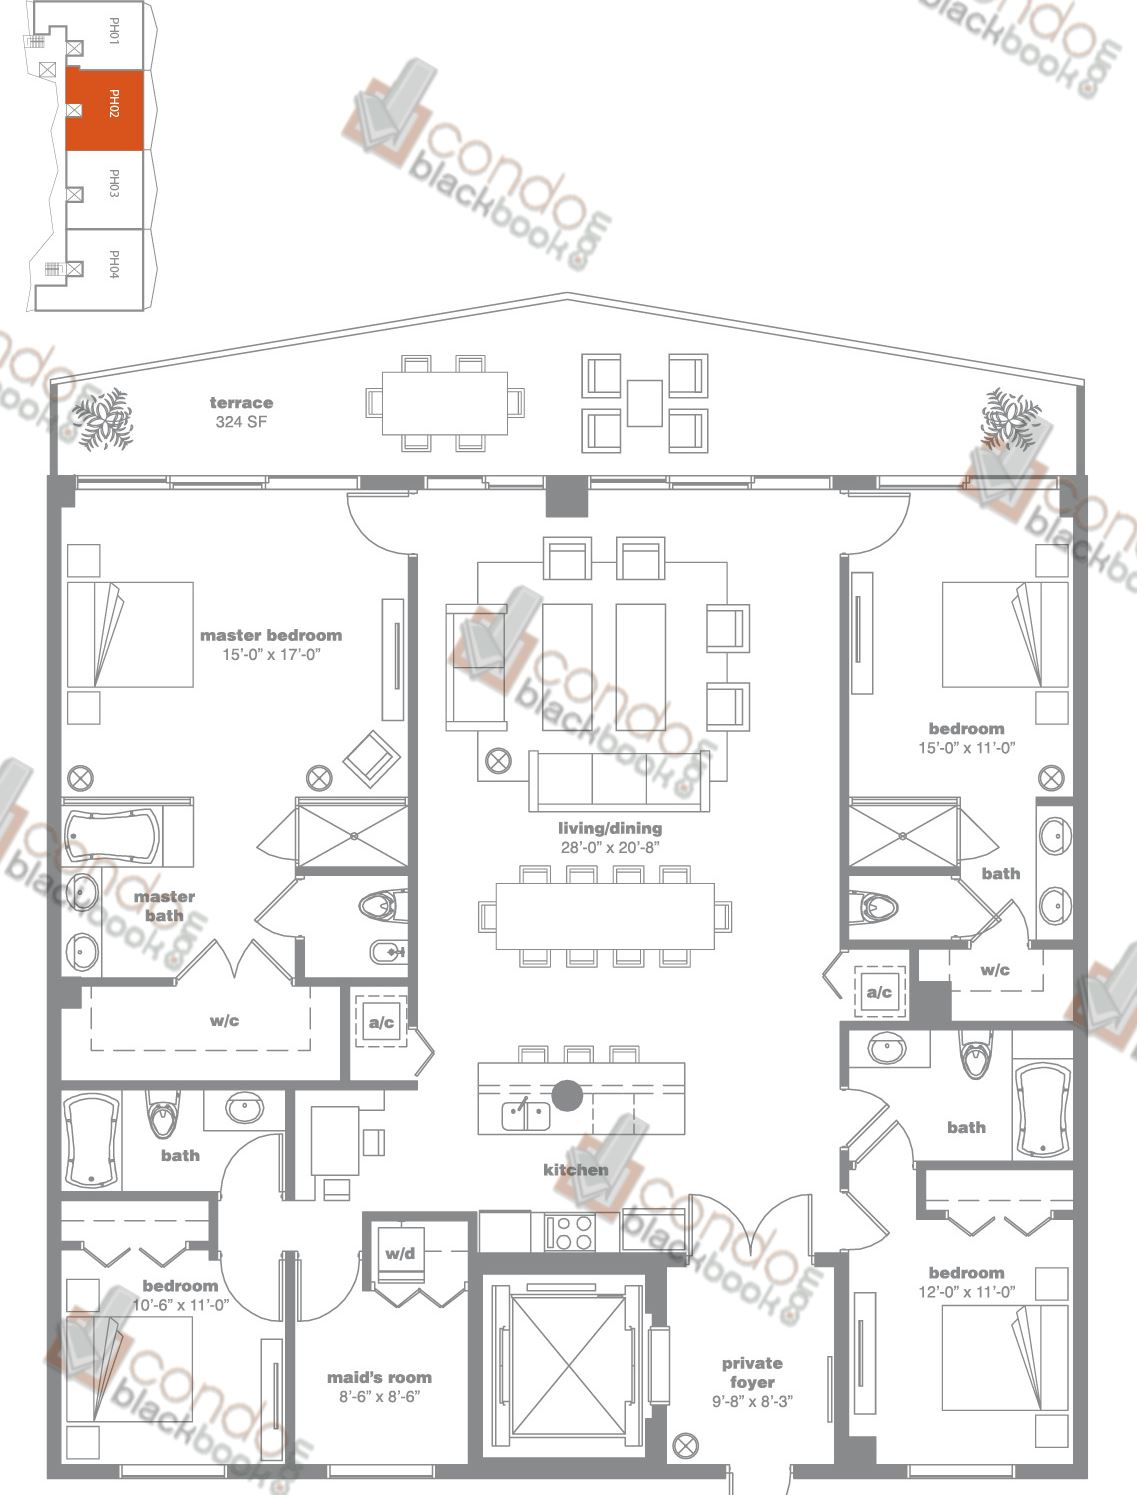 Floor plan for Icon Bay Edgewater Miami, model PH02, line 02, 4/4 + Maid's Room bedrooms, 2,670 sq ft